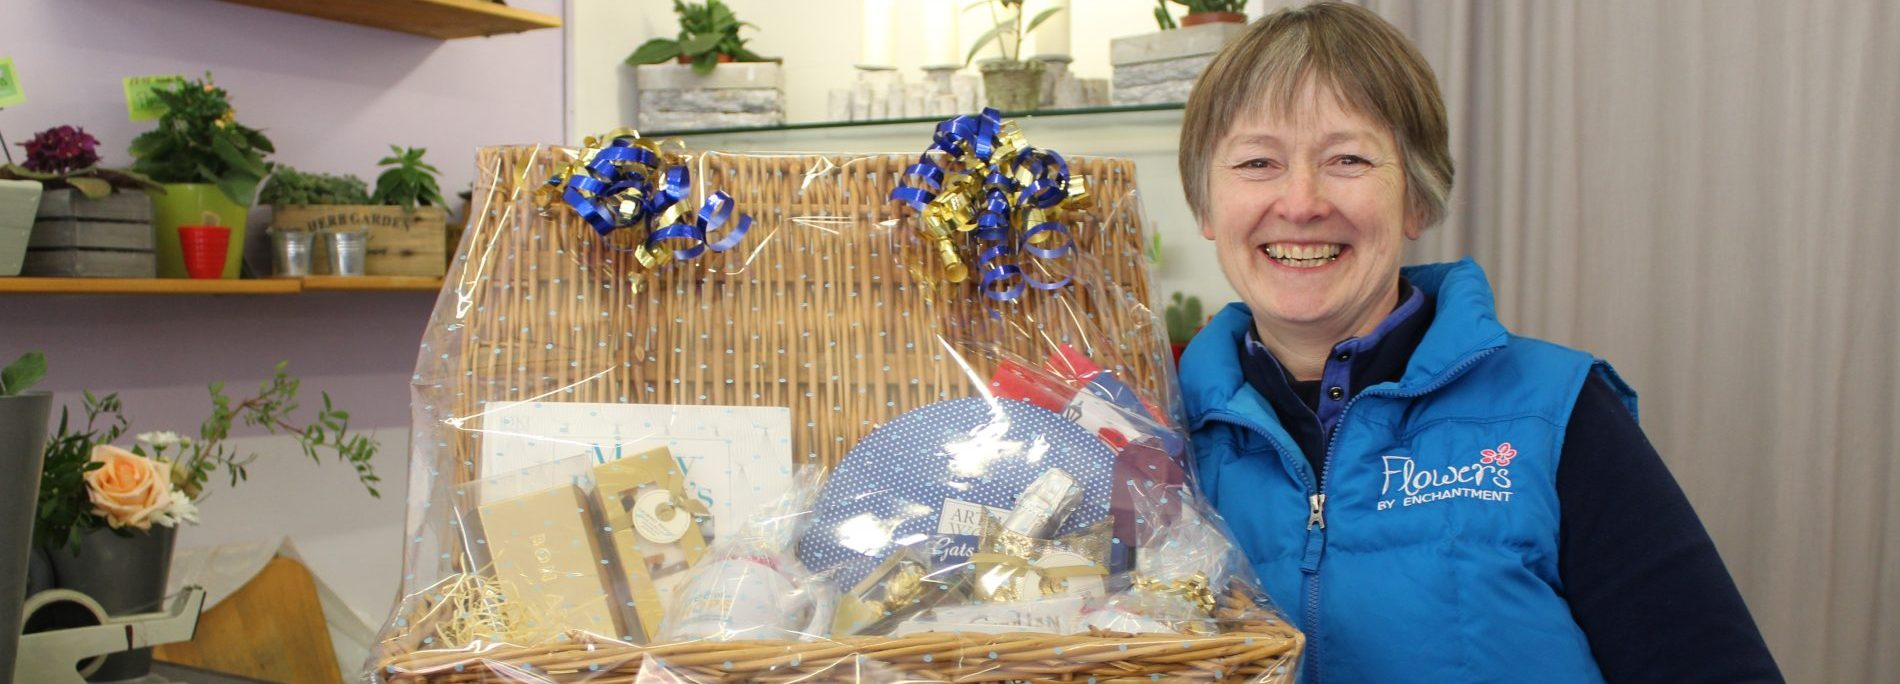 Flowers By Enchantment. Index Mag hamper winner